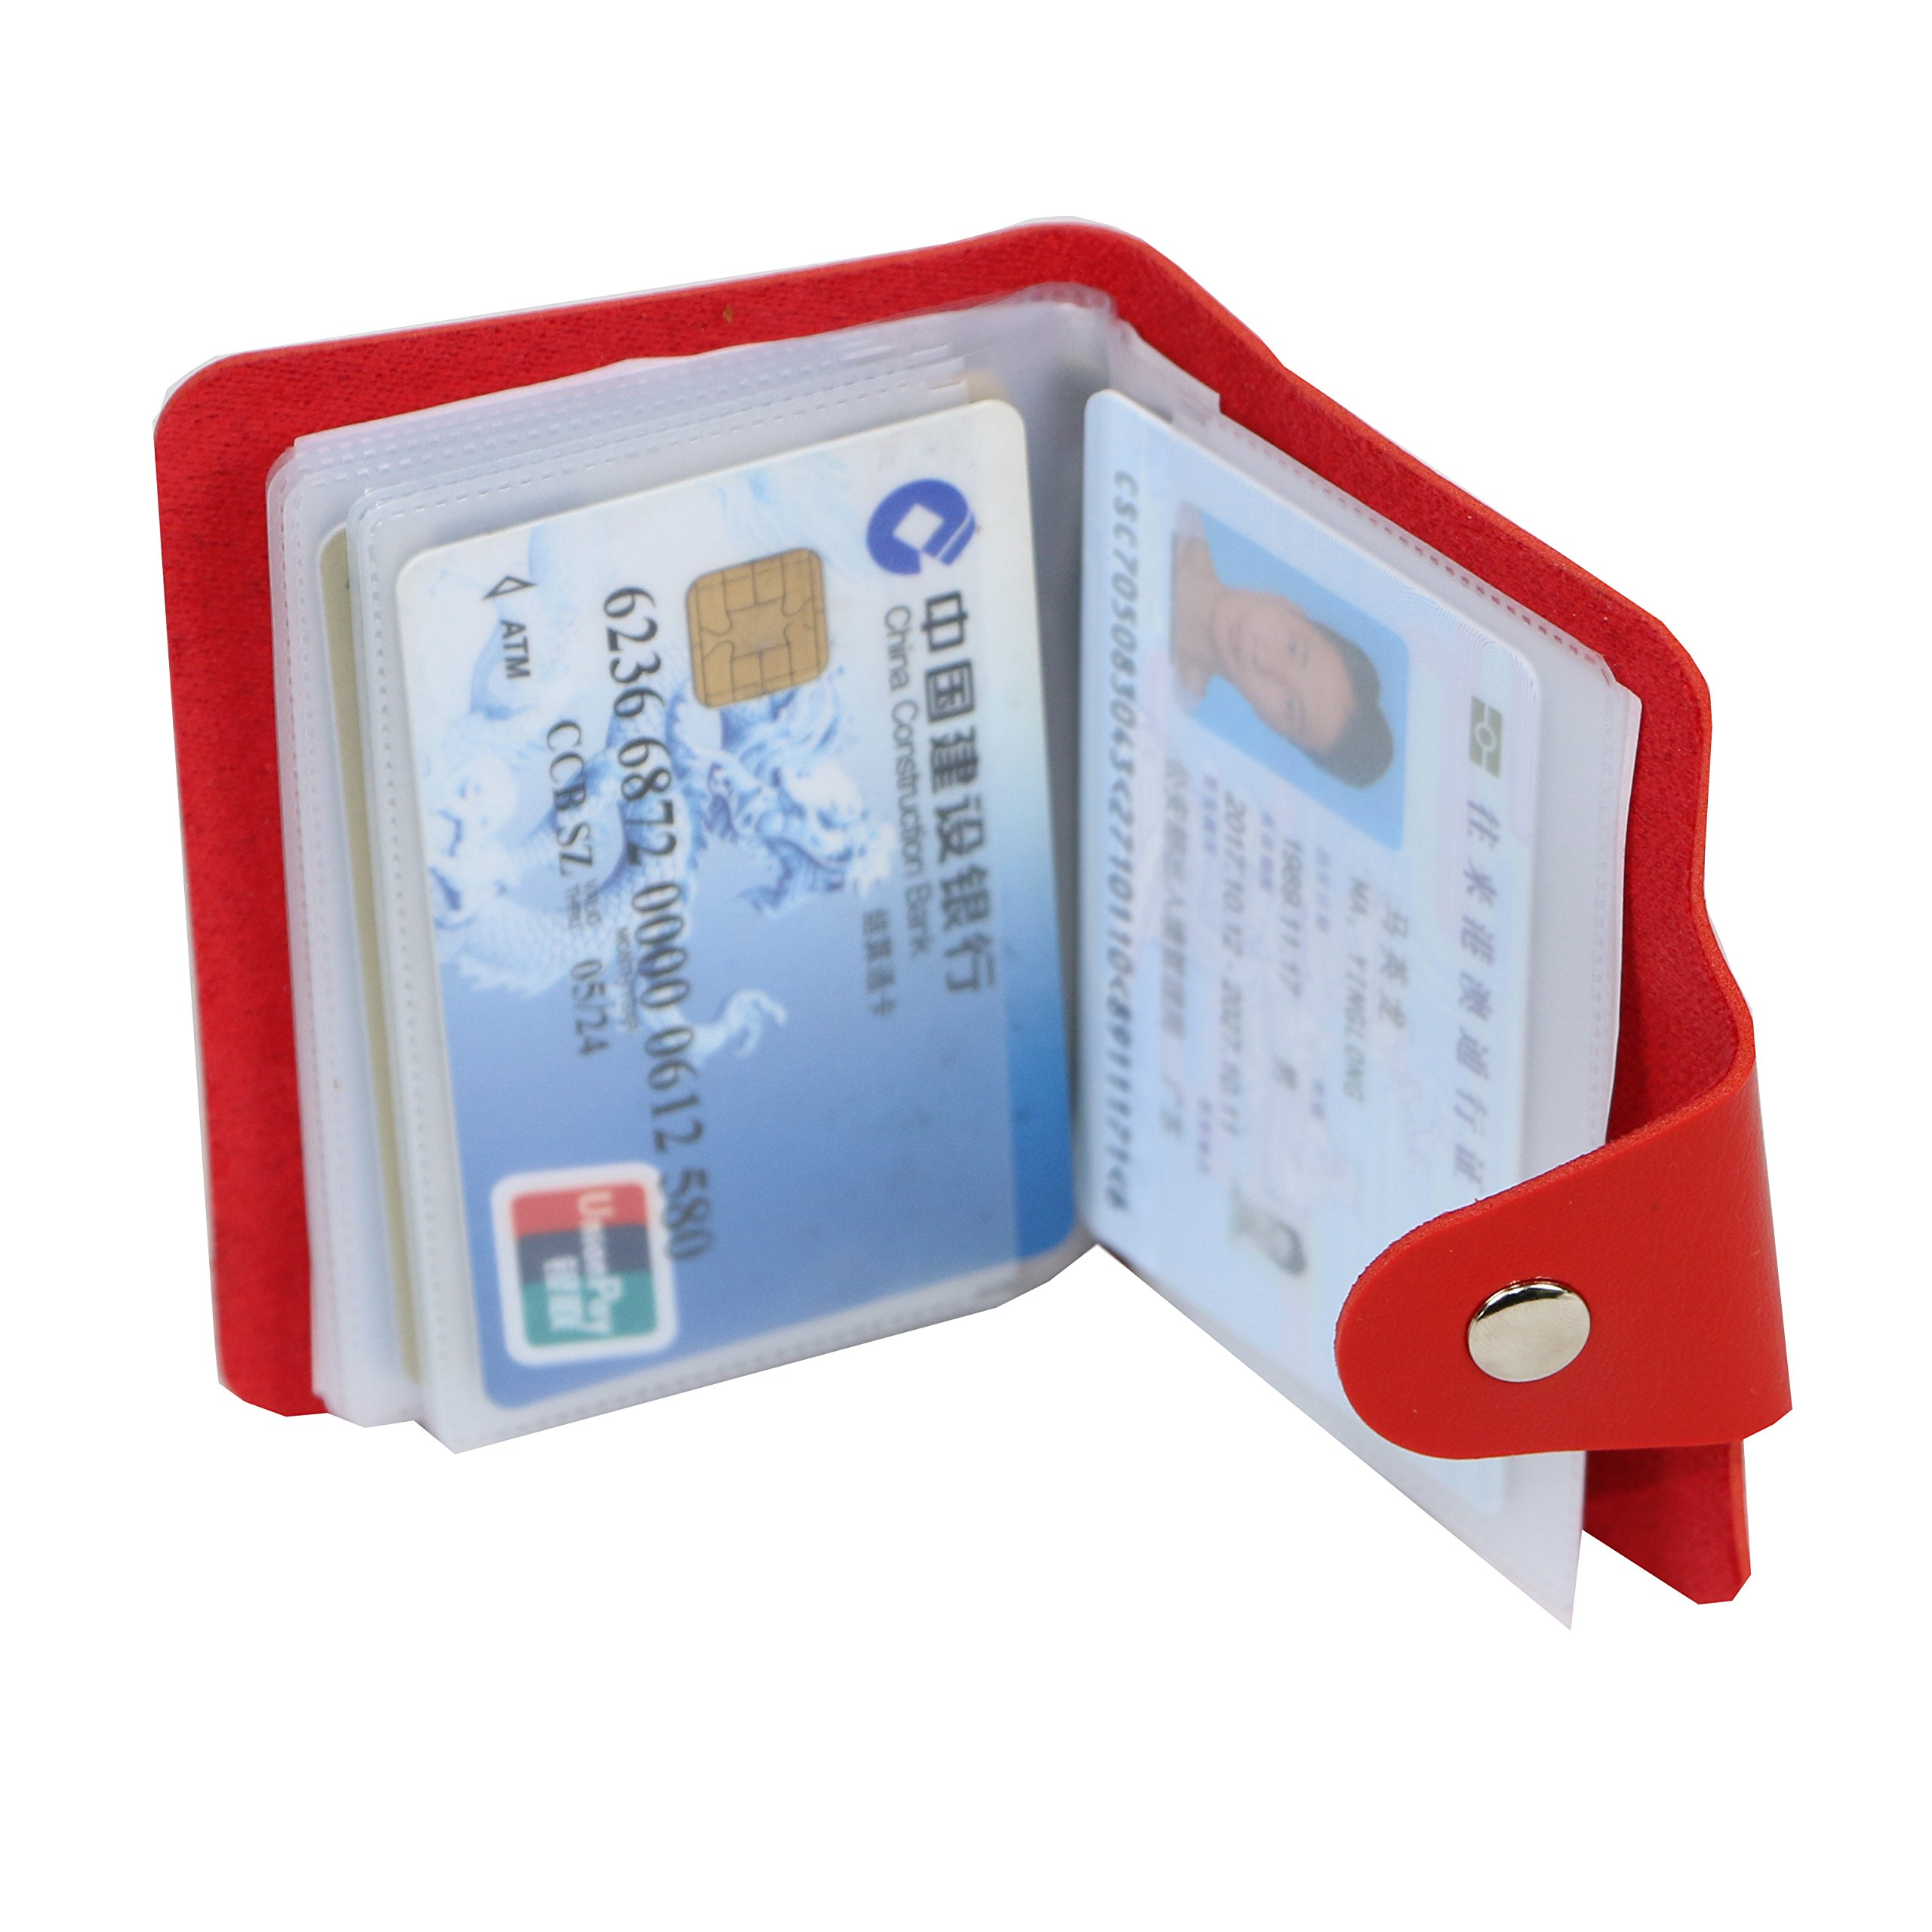 Unisex Small Leather Credit Card Holder Protector Wallet Bagwith - 12 Card Slots (red)